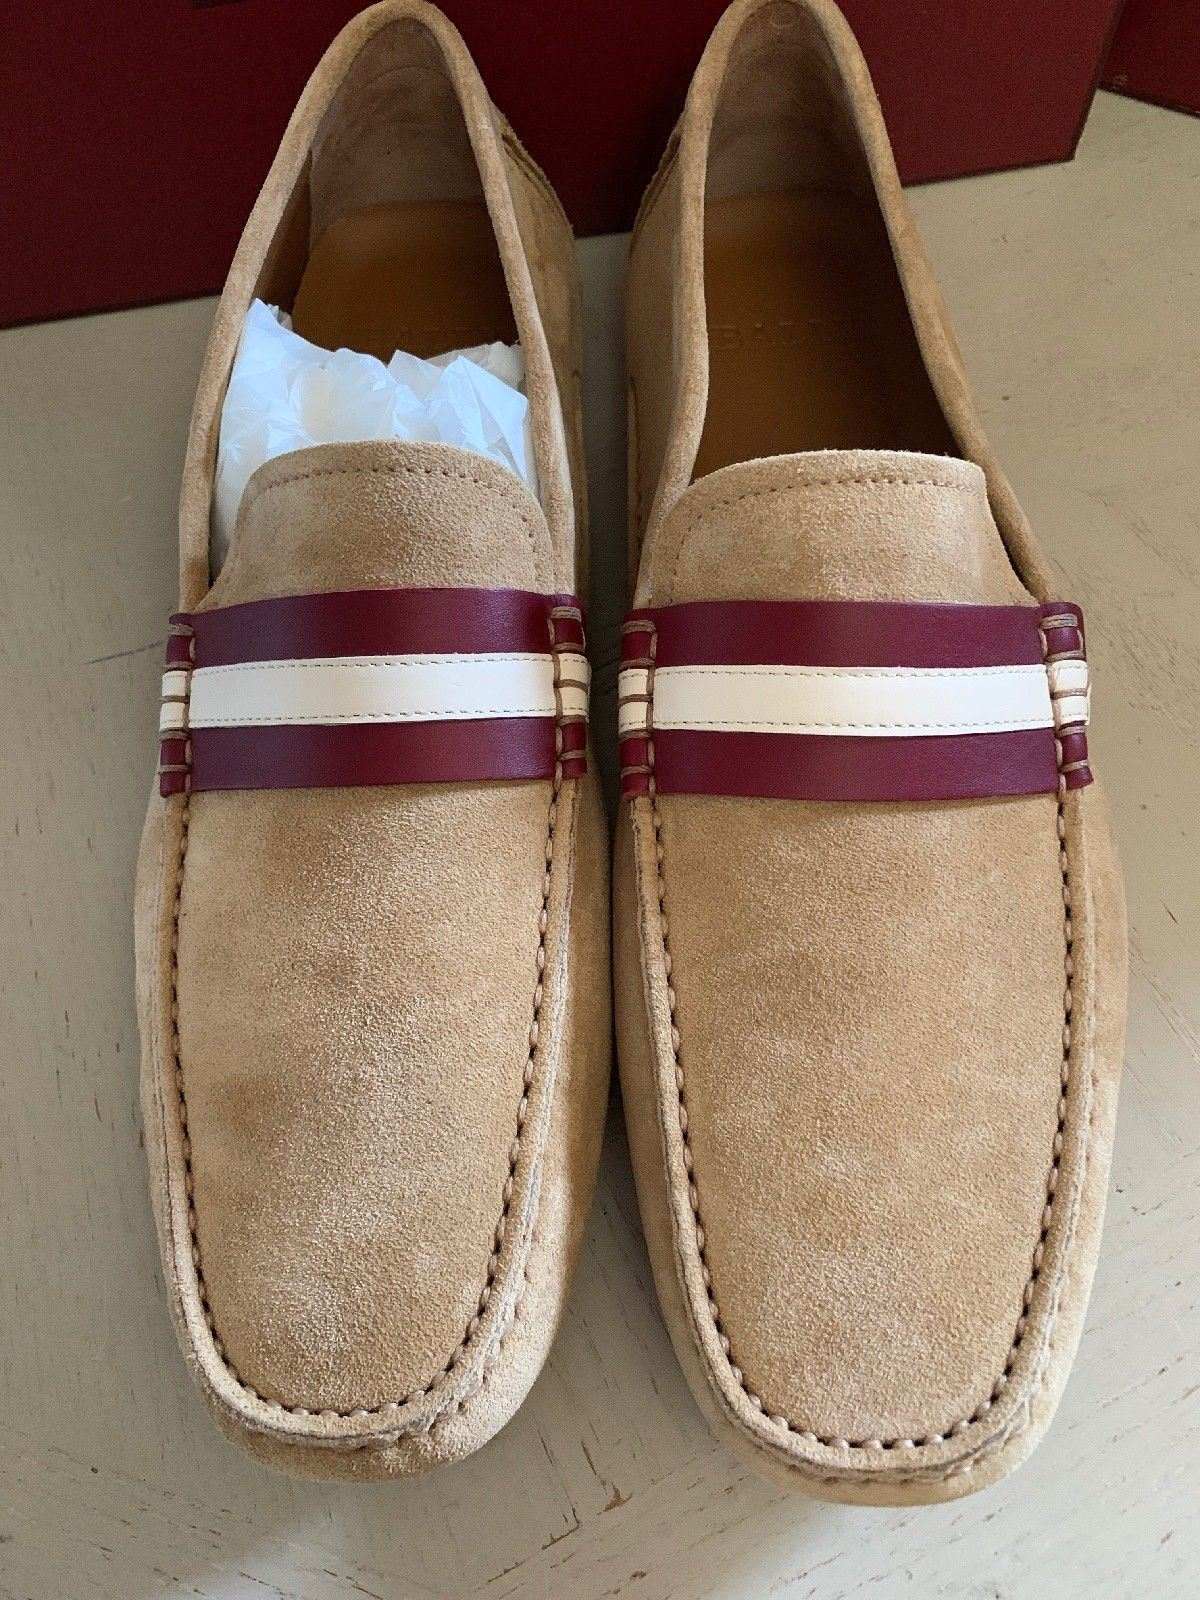 New $550 Bally Men Walker Suide Driver Loafers Shoes Khaki 11 US Italy